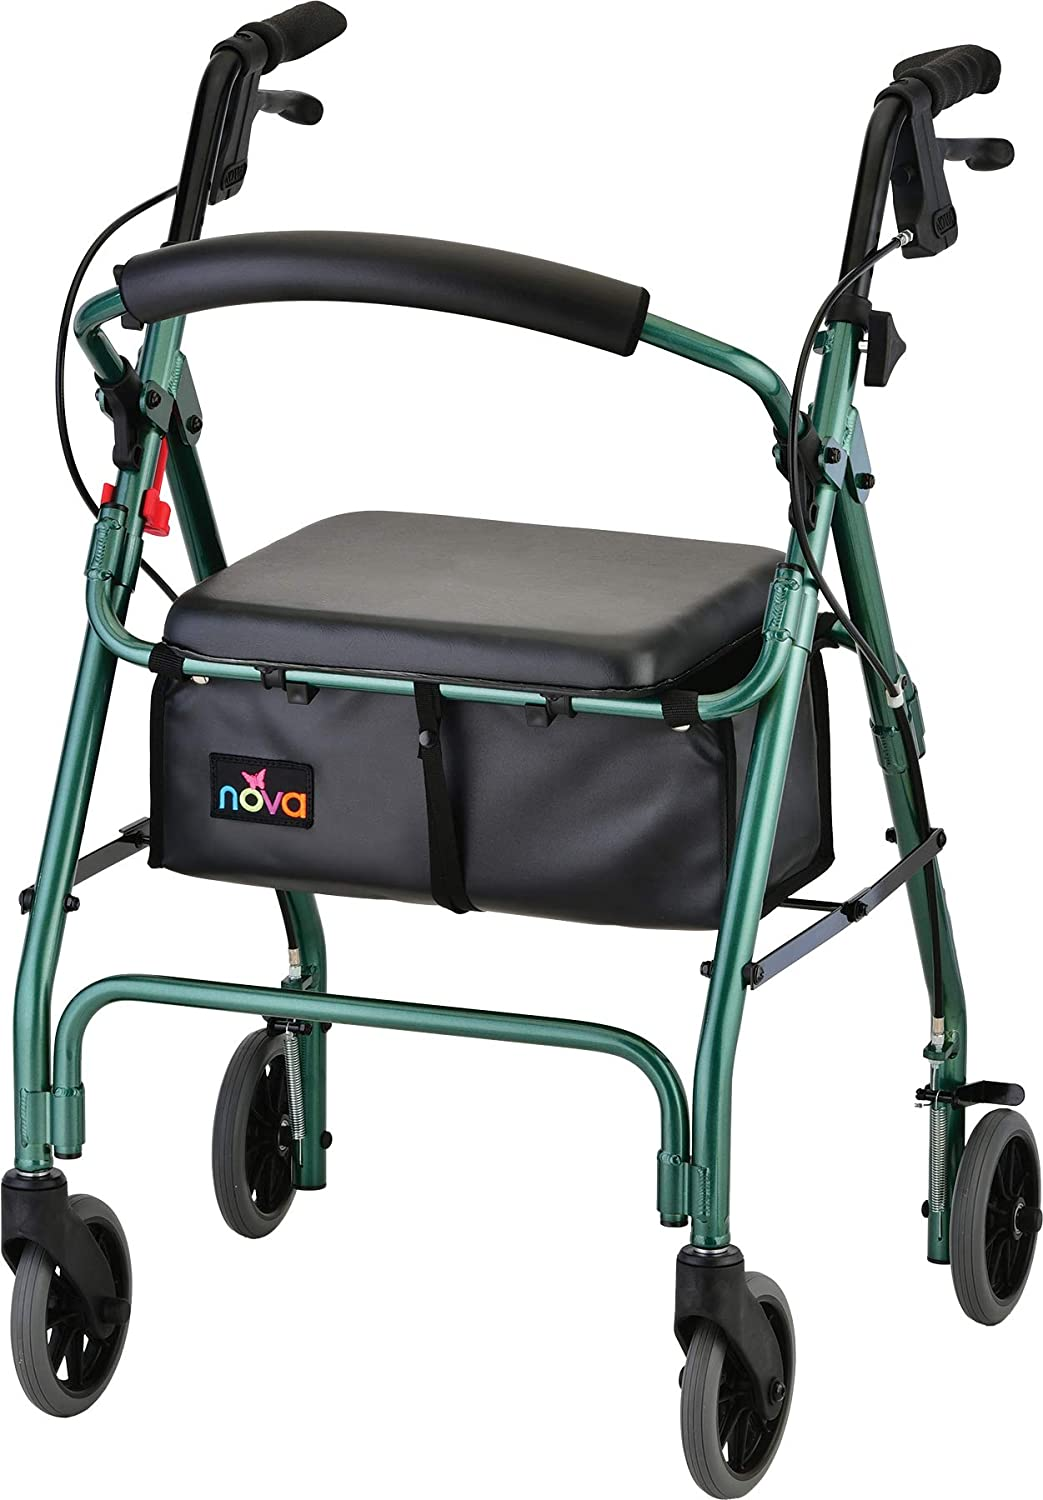 "NOVA Medical Products GetGo Classic Rollator Walker (Standard Size), Rolling Walker for Height 5'4"" - 6'1"", Seat Height is 22.25"", Color Green"